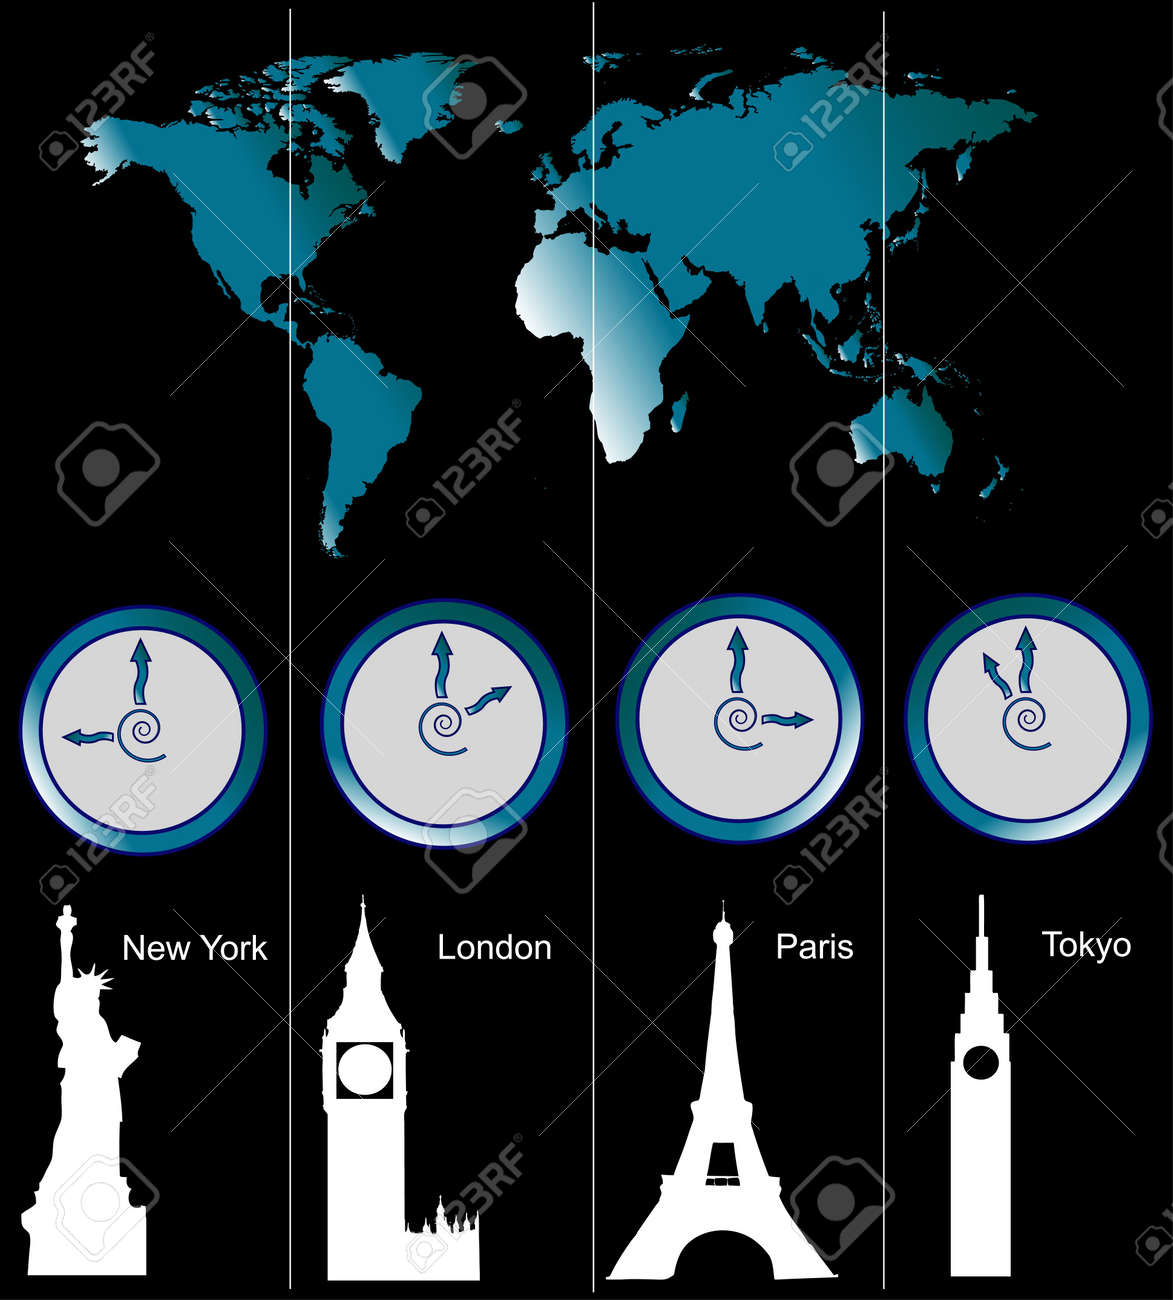 Image of a world map with clocks showing time of four cities stock image of a world map with clocks showing time of four cities new york gumiabroncs